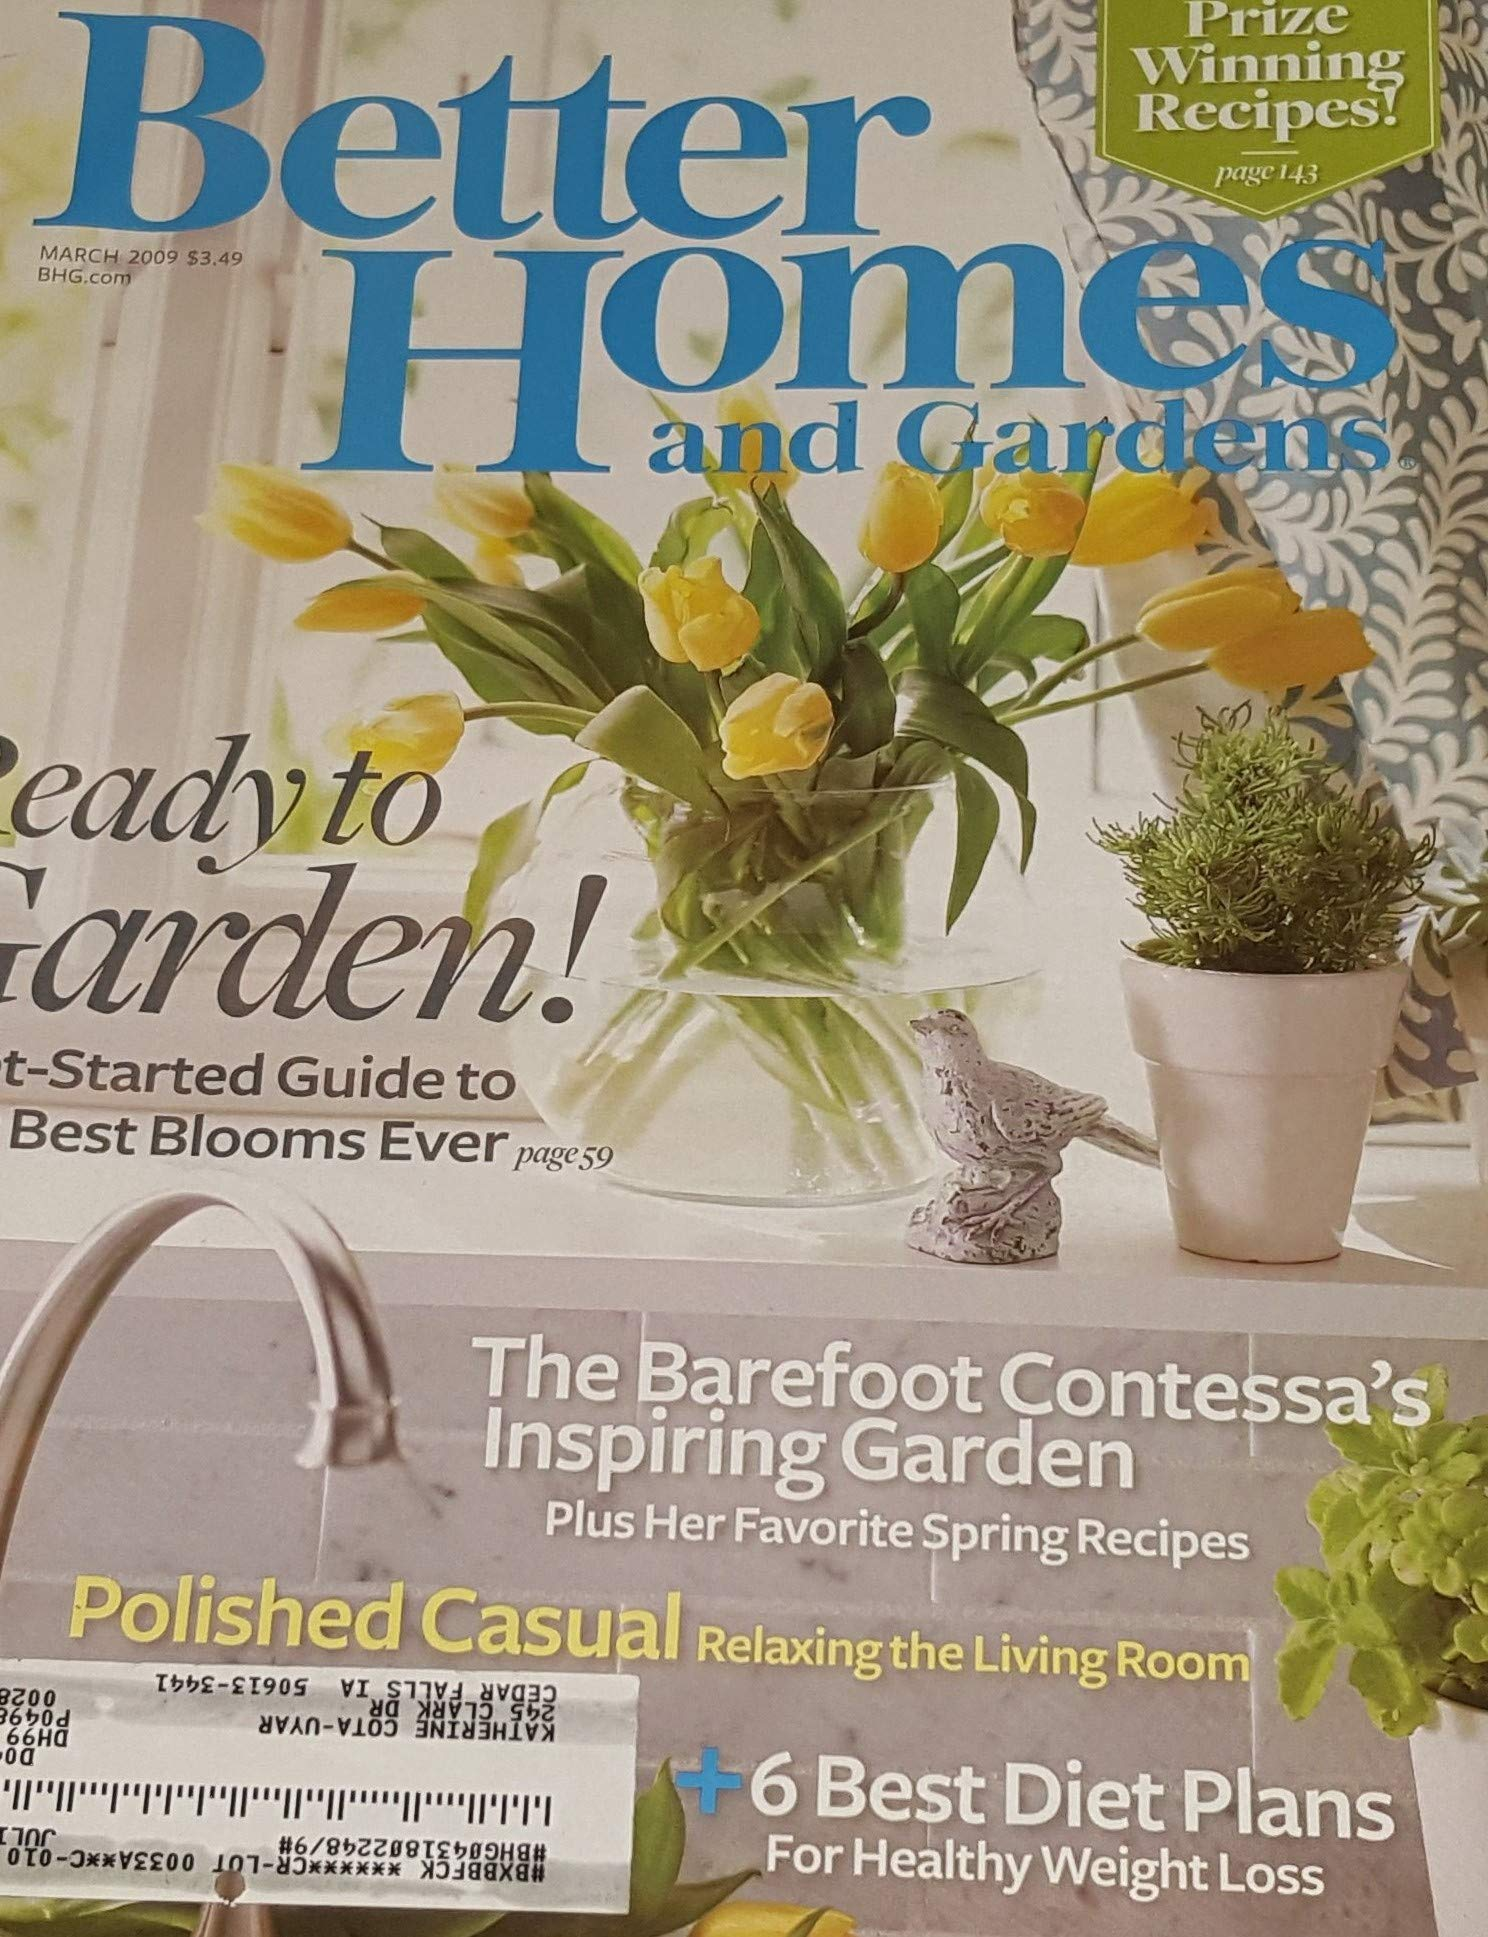 Better Homes and Gardens, March 2009, Ready to Garden! A Get- started Guide to Your Best Blooms Ever. (The Barefoot Contessa's Inspiring Garden, Plus Her Favorite Spring Recipes) ebook